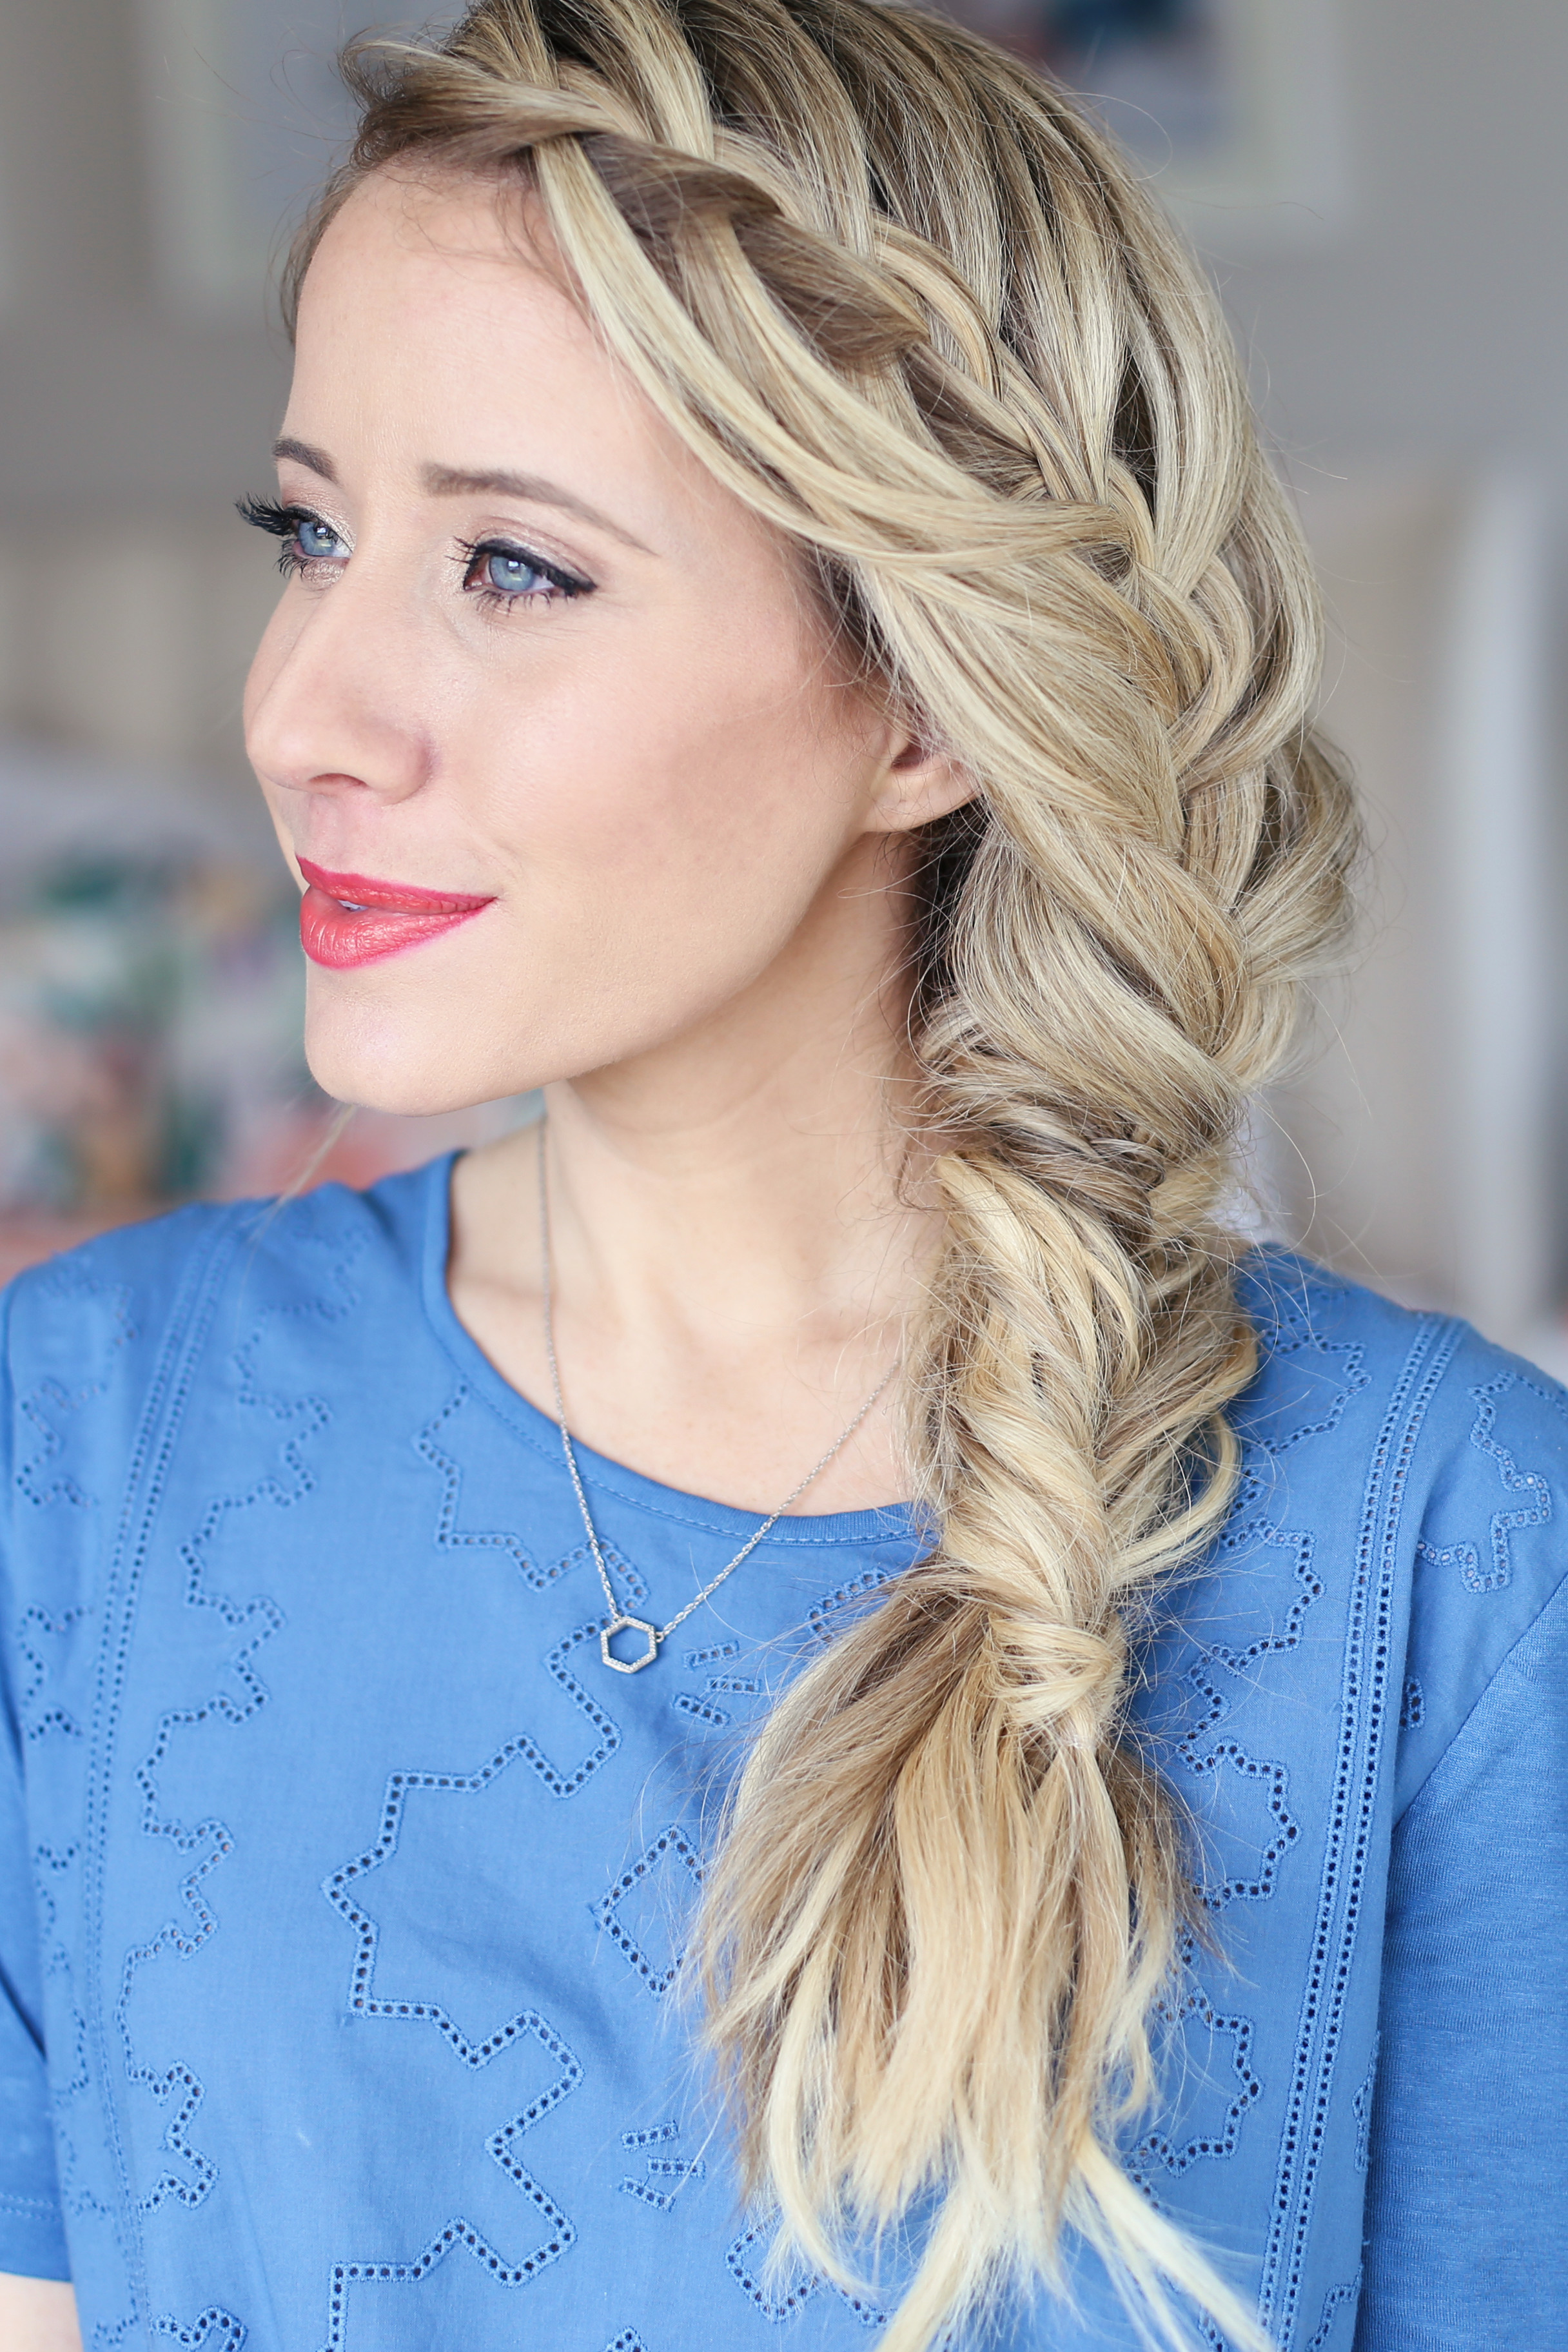 Best ideas about Girl Hairstyle . Save or Pin 3 in 1 Cascading Waterfall Build able Hairstyle Now.